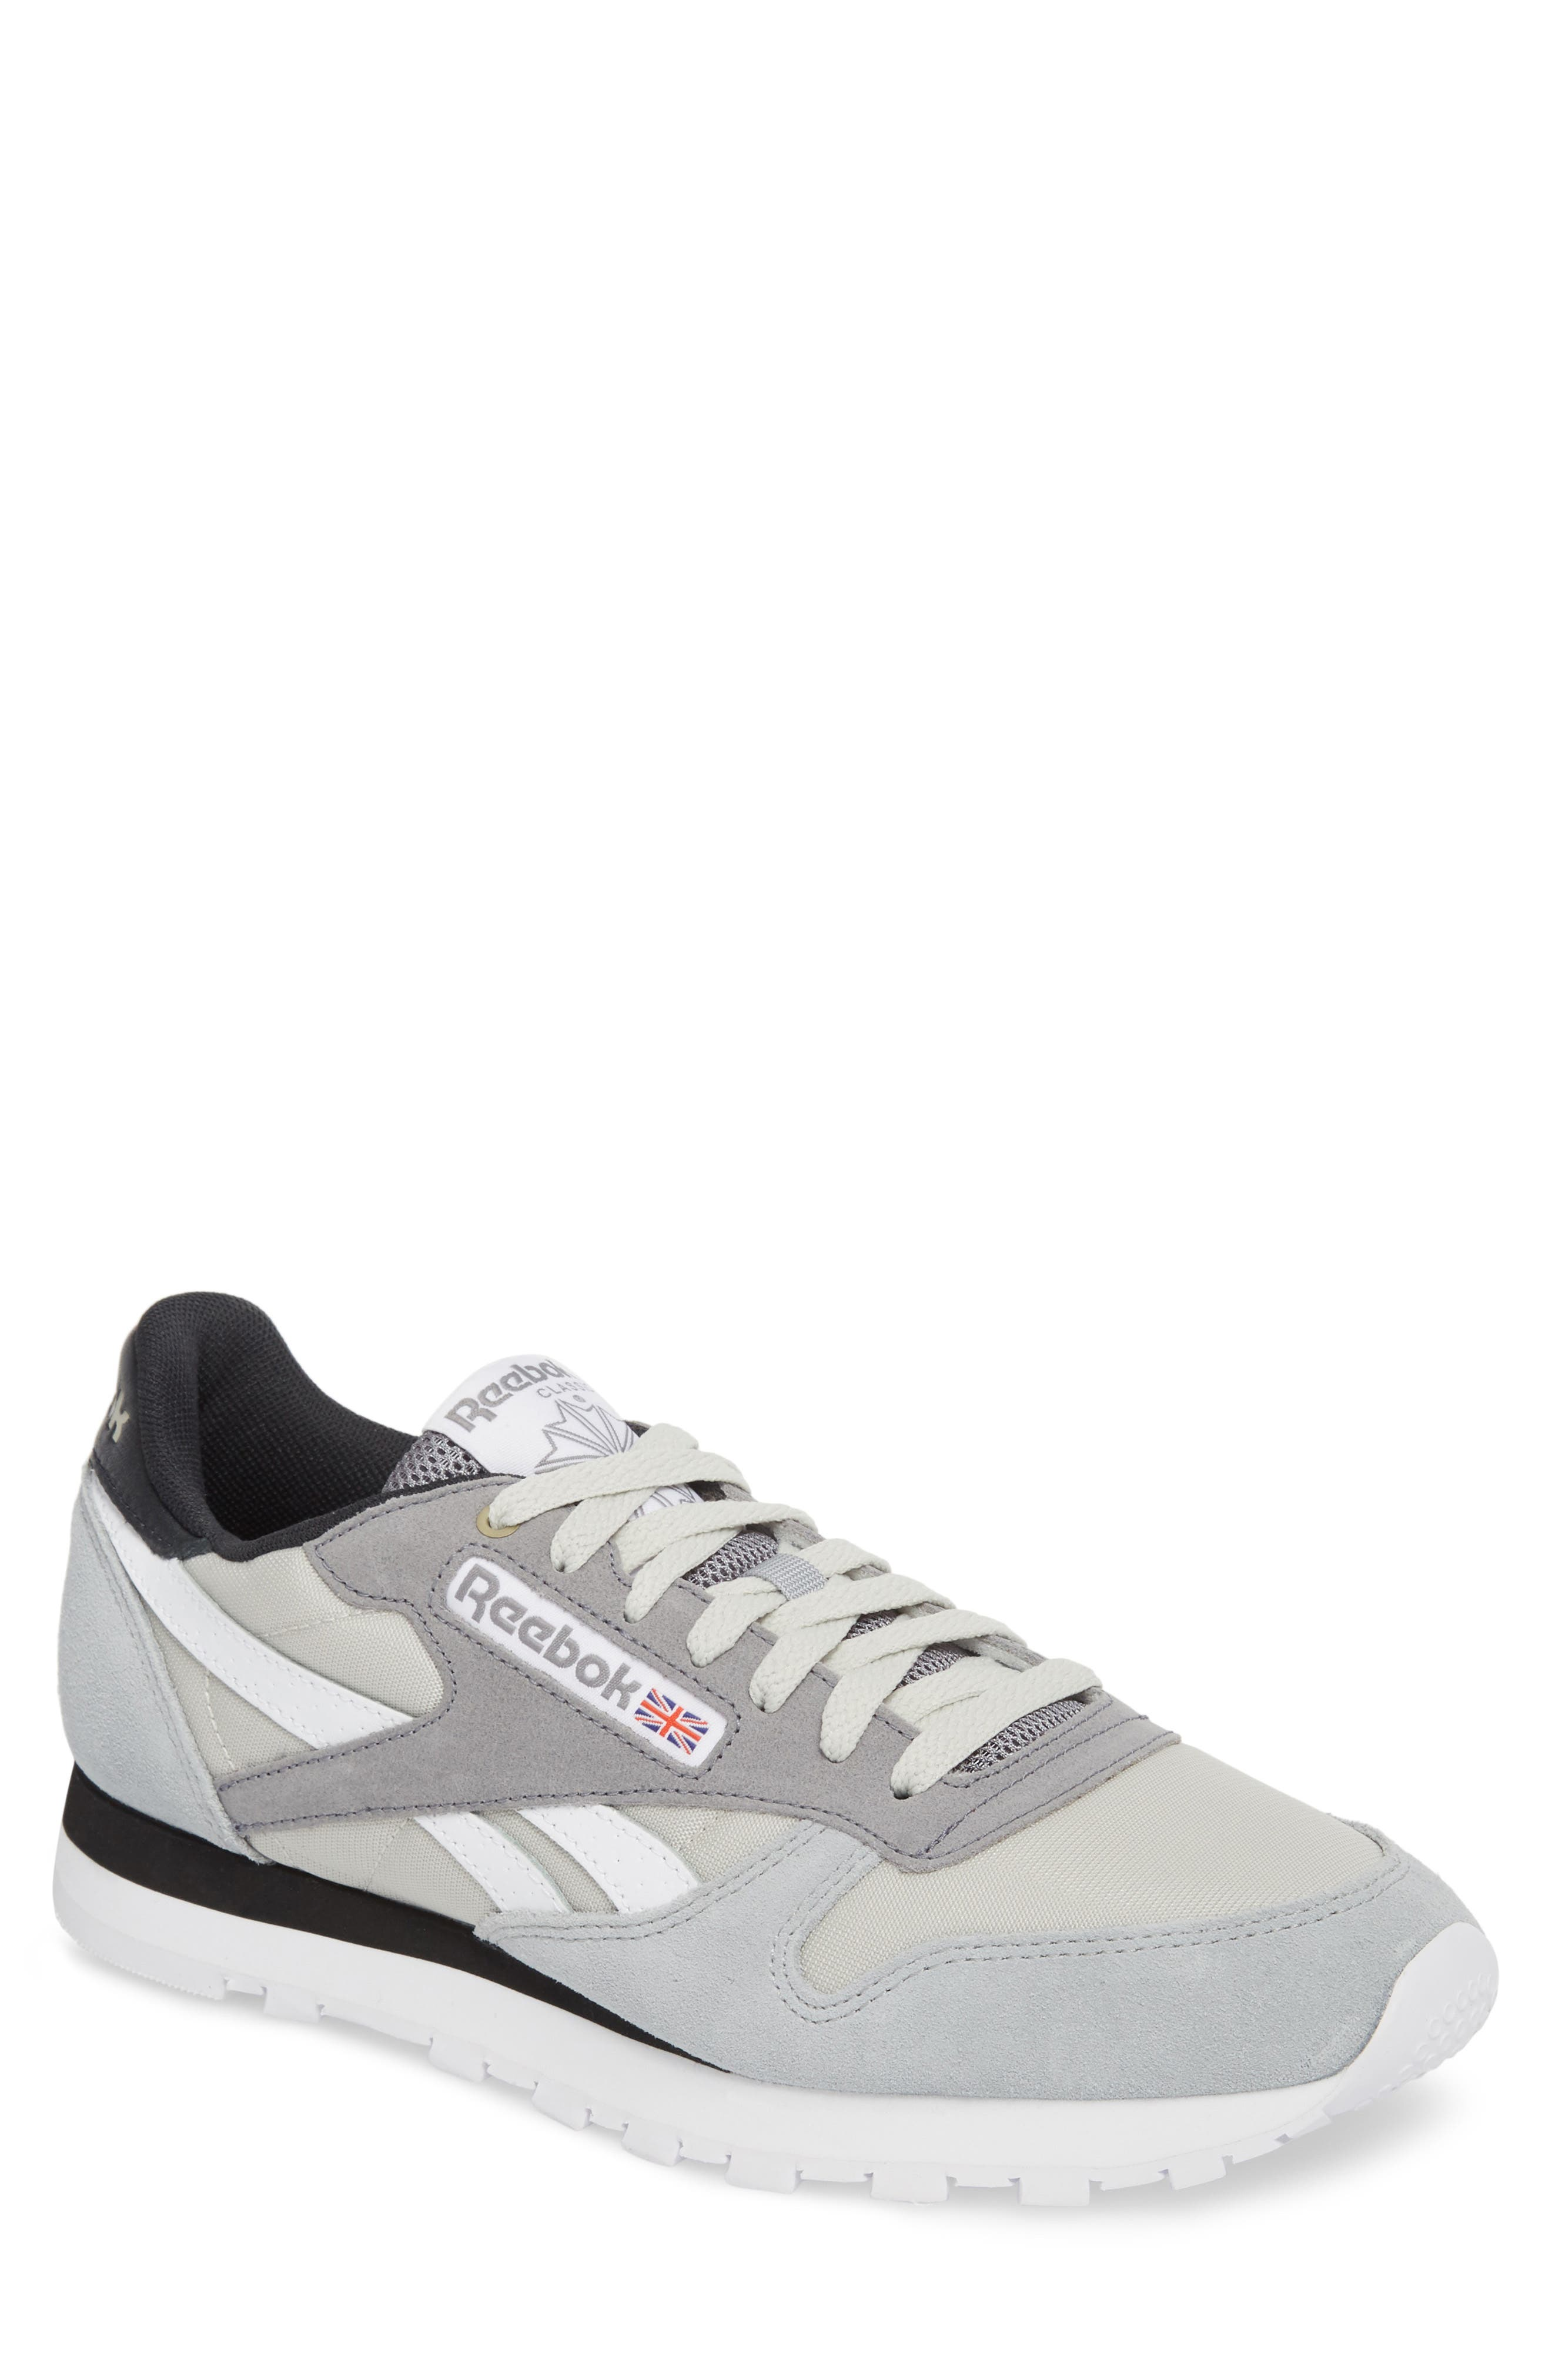 Classic Leather MCCS Sneaker,                         Main,                         color, Grey/ White